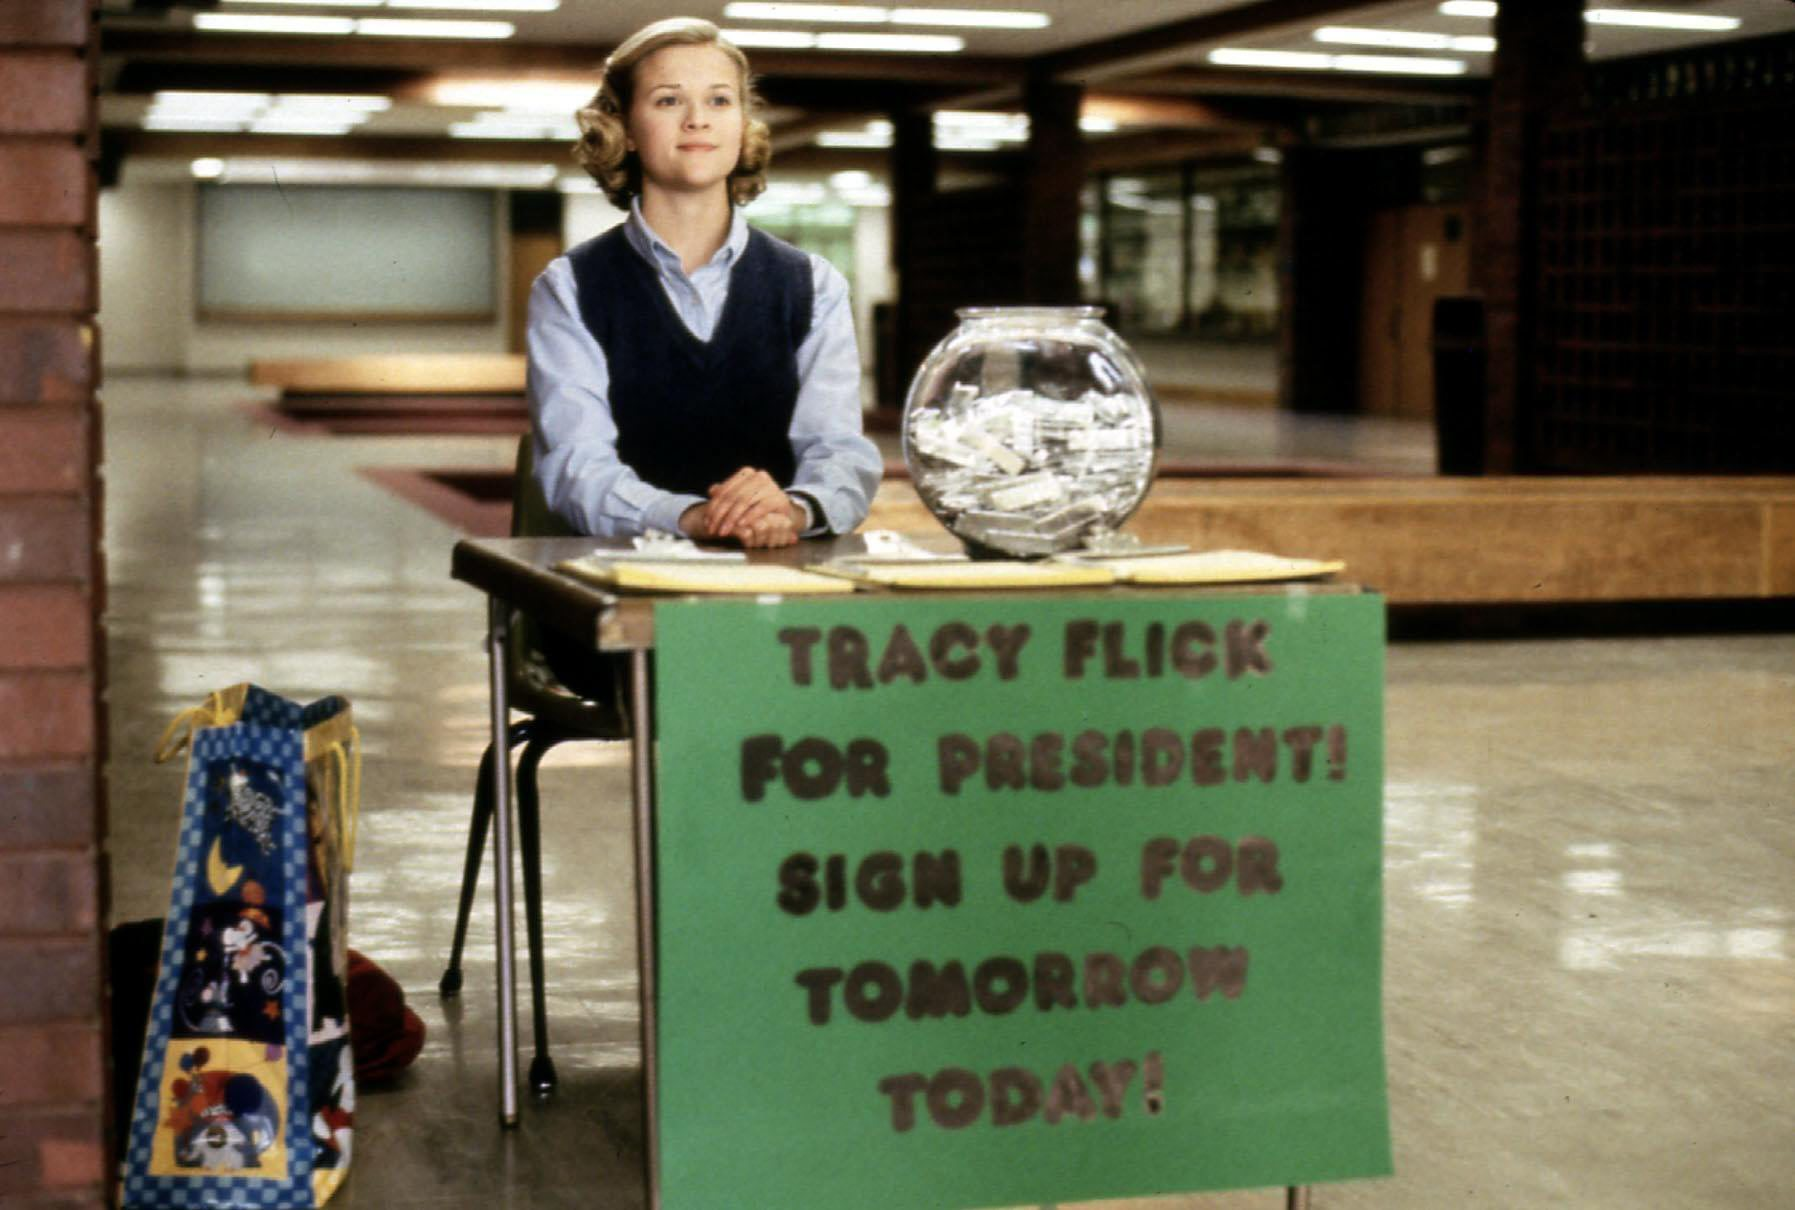 Election (1999) Tracy Flick (Reese Witherspoon) Regie: Alexander Payne , Paramount |